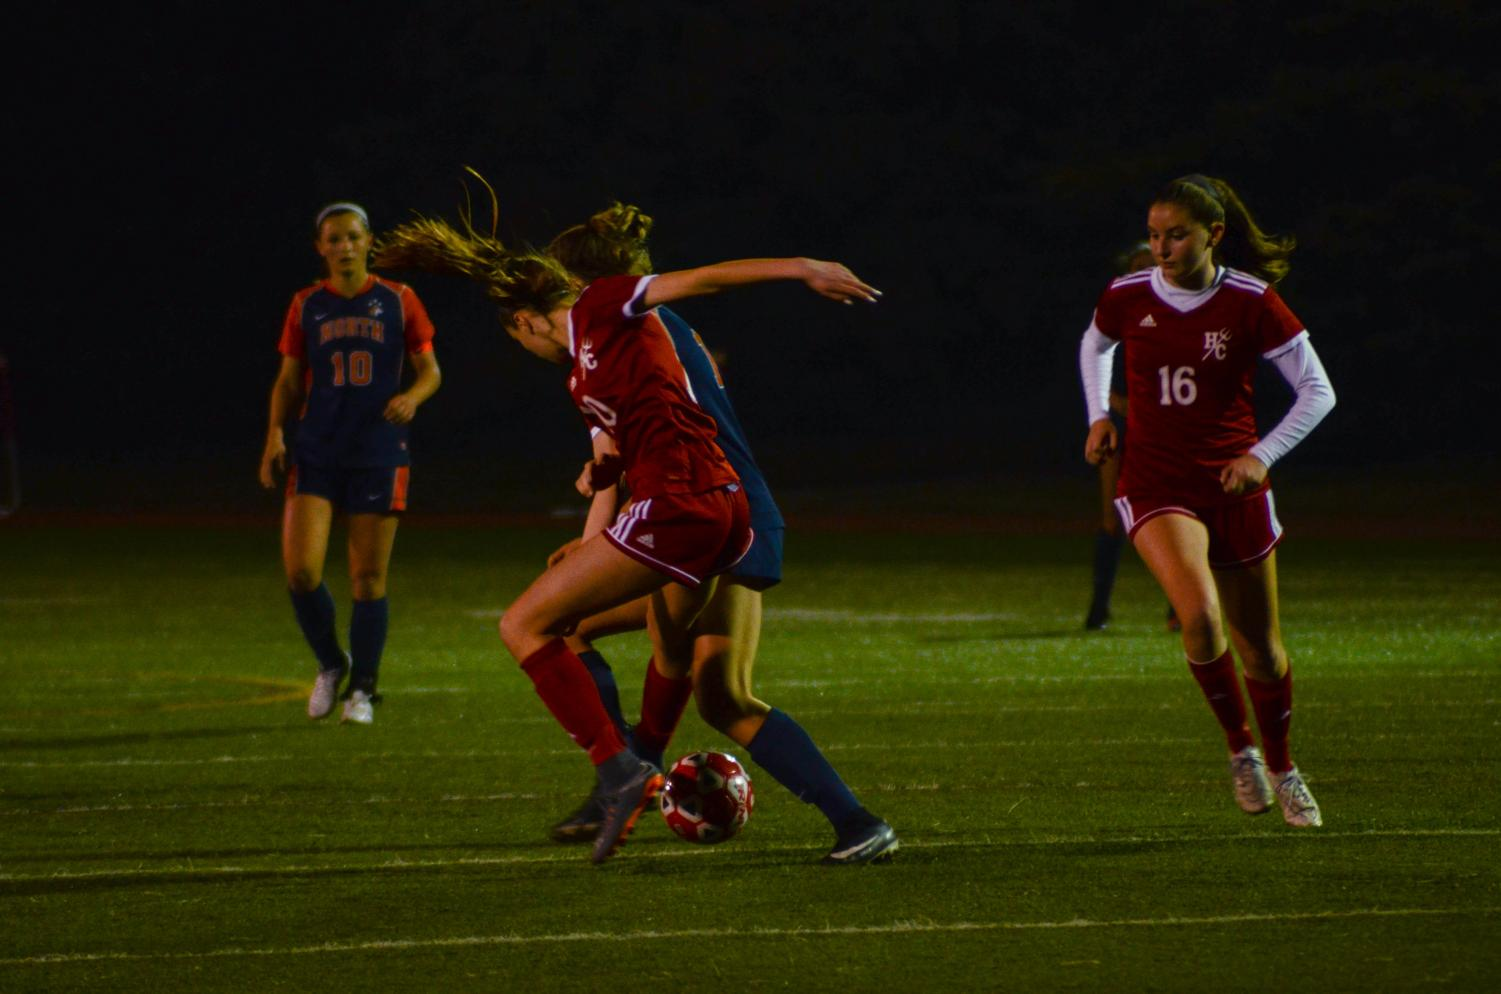 On Saturday, April 7, girls varsity soccer faced off against Evanston High School at the North Shore Invite.